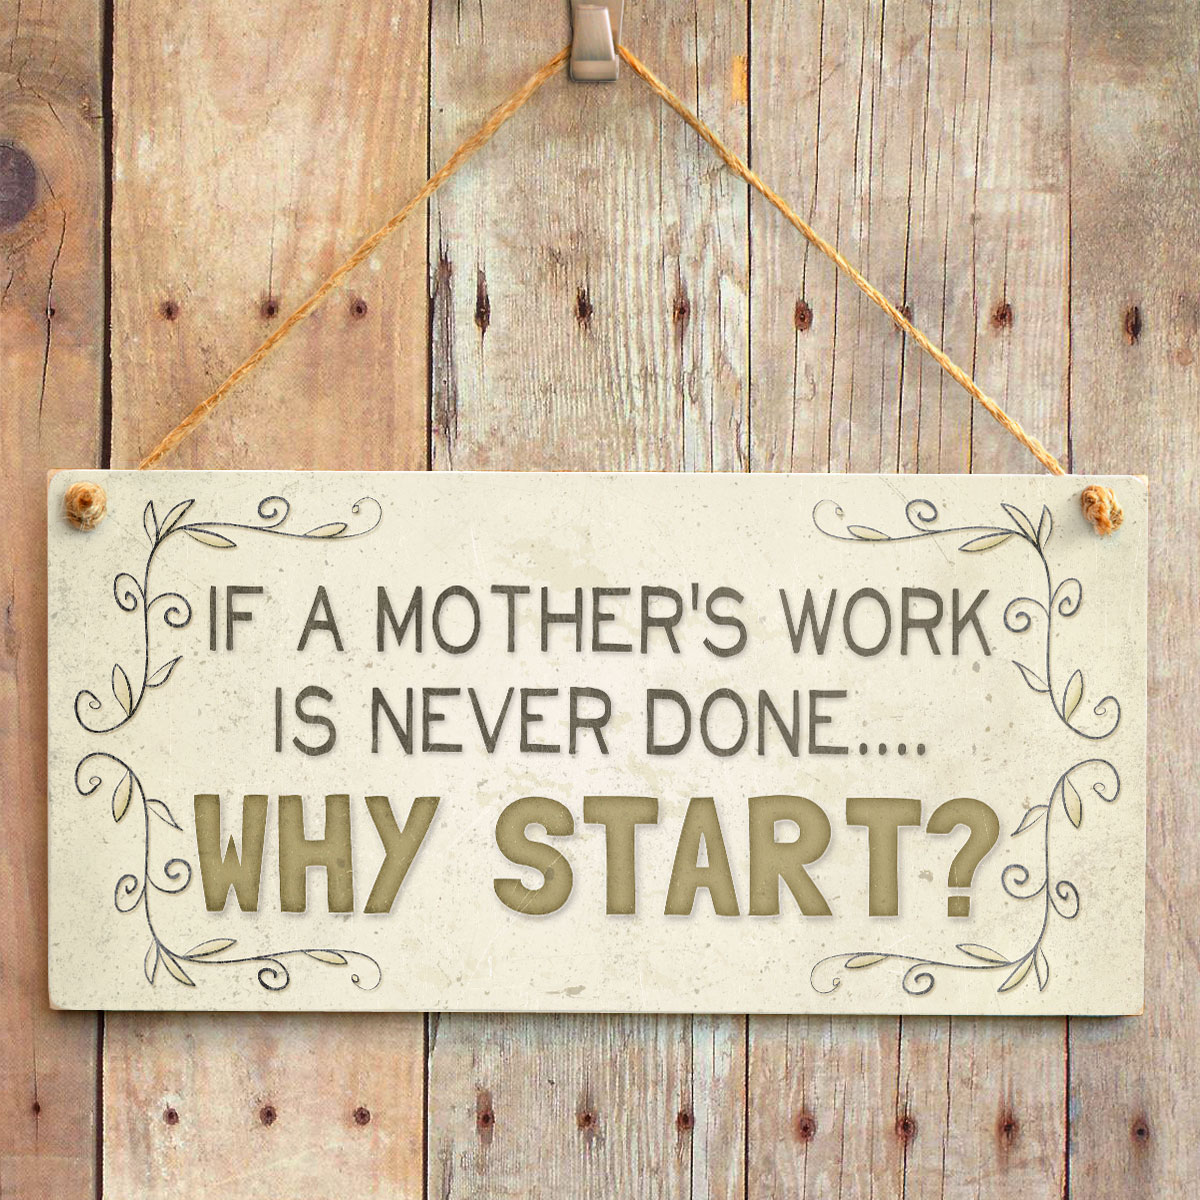 """mothers work is never done """"i also am imitating what my mother has done,"""" heti says of choosing motherhood  over motherhood """"i do as my mother did, and for the same reasons we work."""